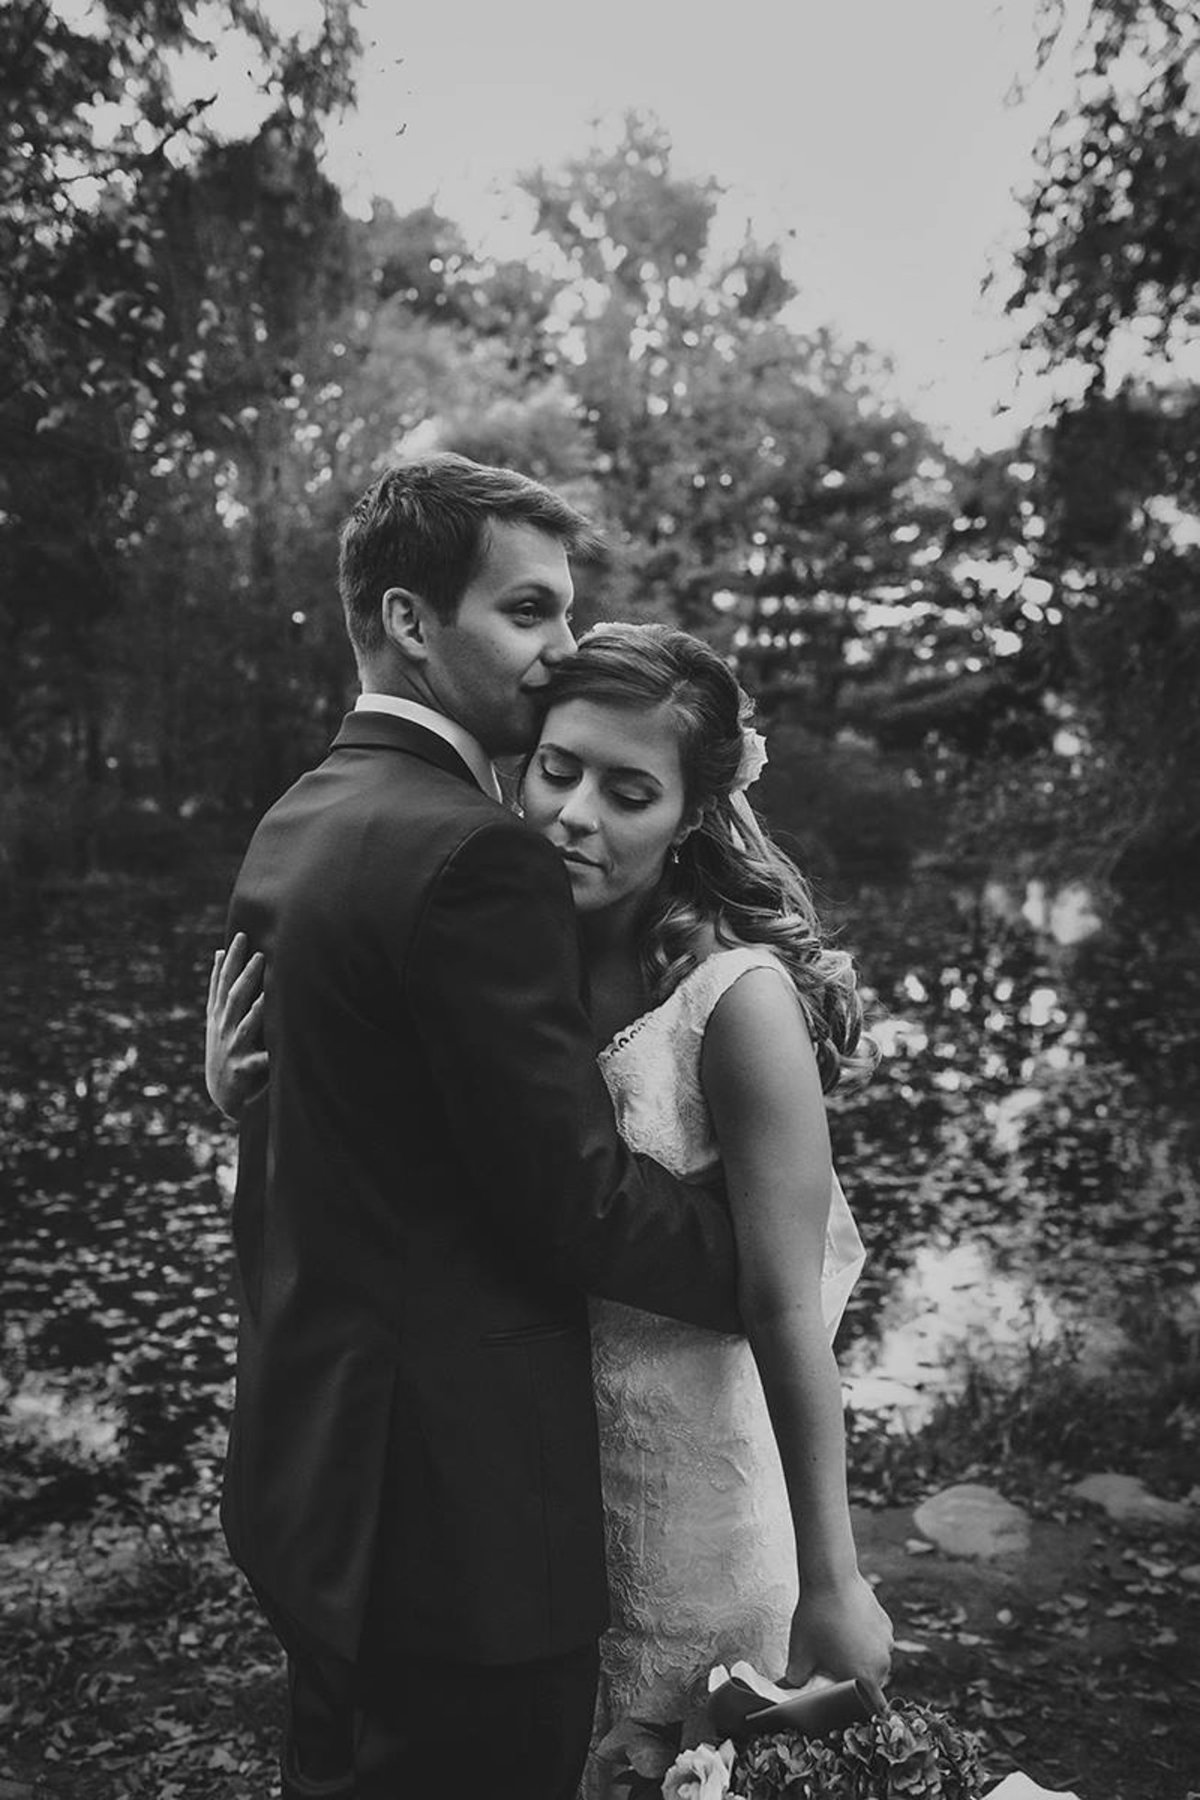 Megan-Marie-Photographer-Vermont-New-England-Family-Wedding-Portrait-Couples-Photographer--21